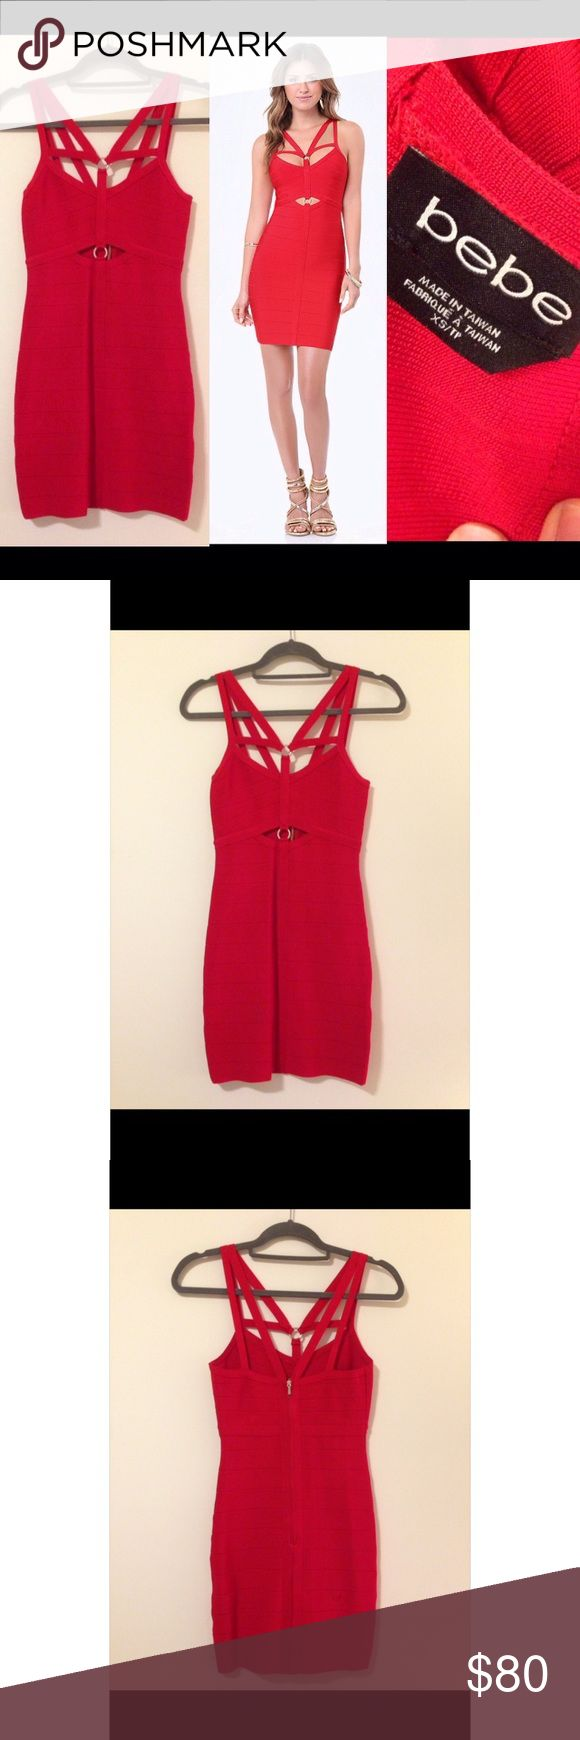 BEBE 💃 Red Bandage Dress Mini Size 4 Worn once! Worn once for a Broadway Opening. It is in perfect condition. Very sexy! Size Extra Small. I'm a size 5/6 usually and it stretched to hug every curve! Definitely a head turner! bebe Dresses Mini